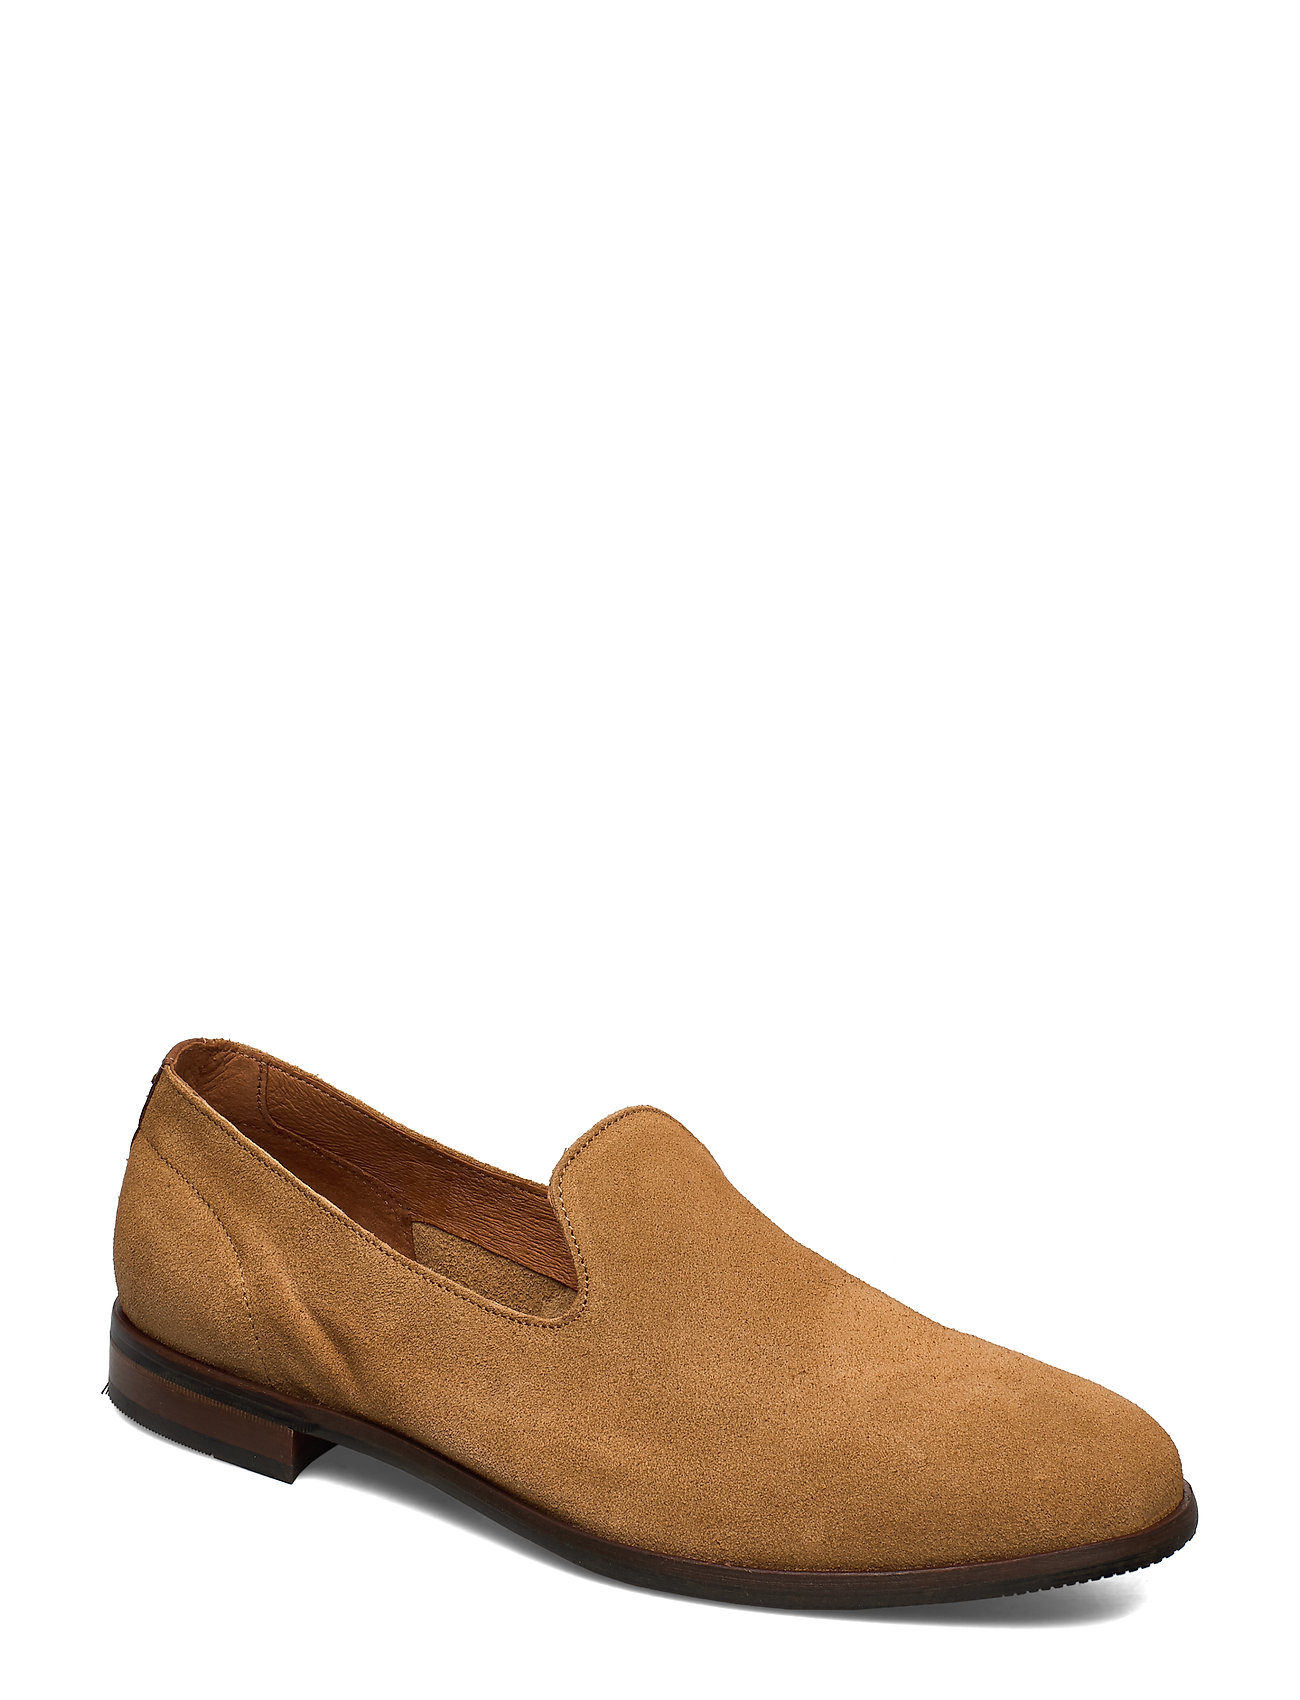 Image of Stb-Rey S Loafers Flade Sko Brun Shoe The Bear (3338944563)